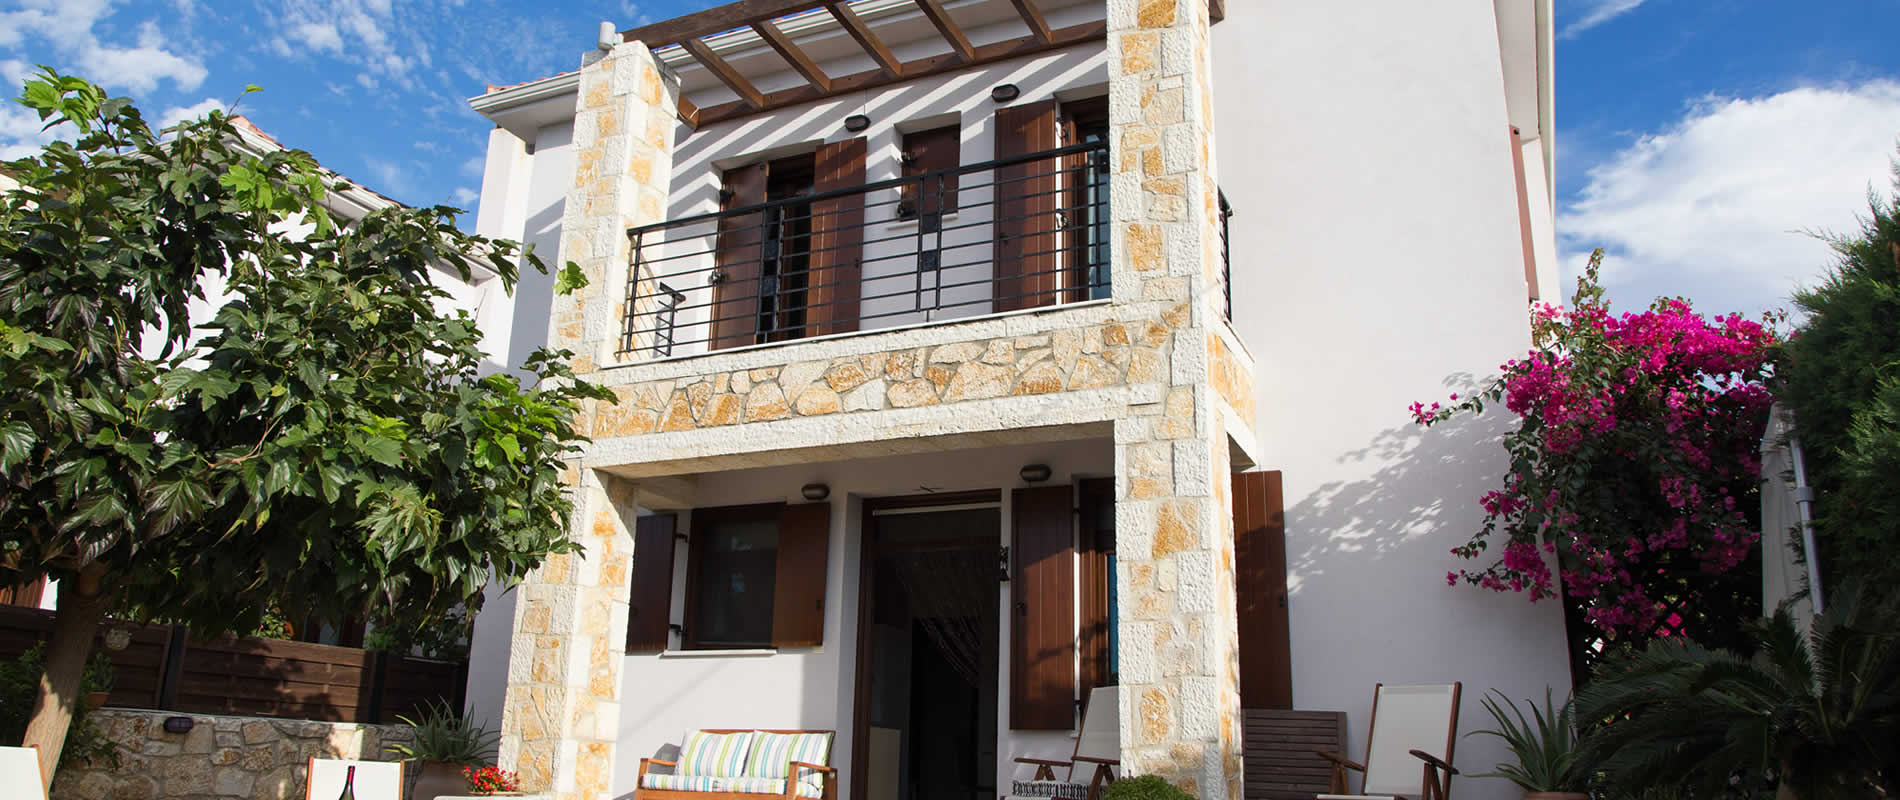 Rental Villa Aloe in Sivota village, Thesprotia, Greece